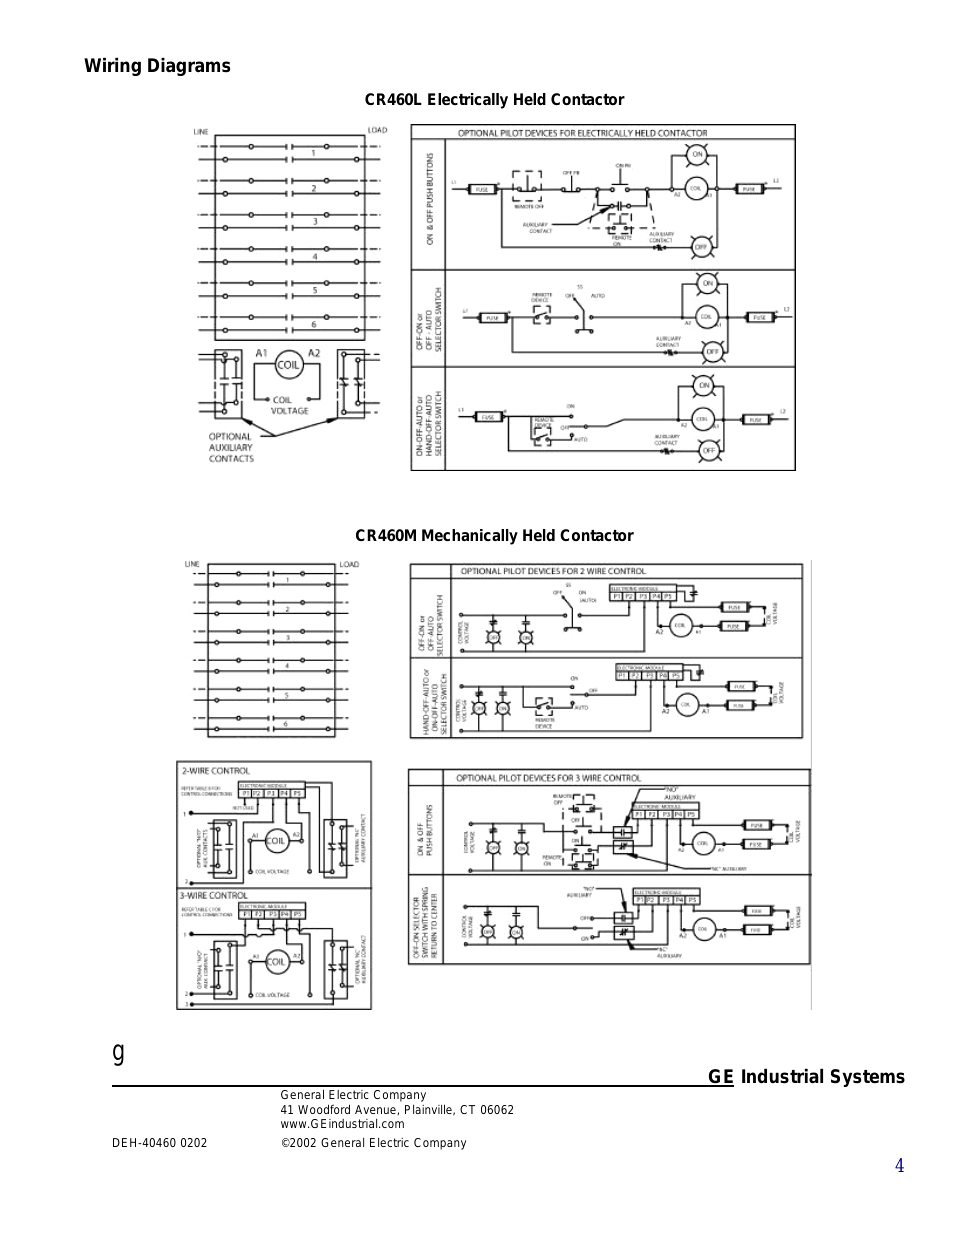 20 Complex Led Tube Wiring Diagram References Led tubes